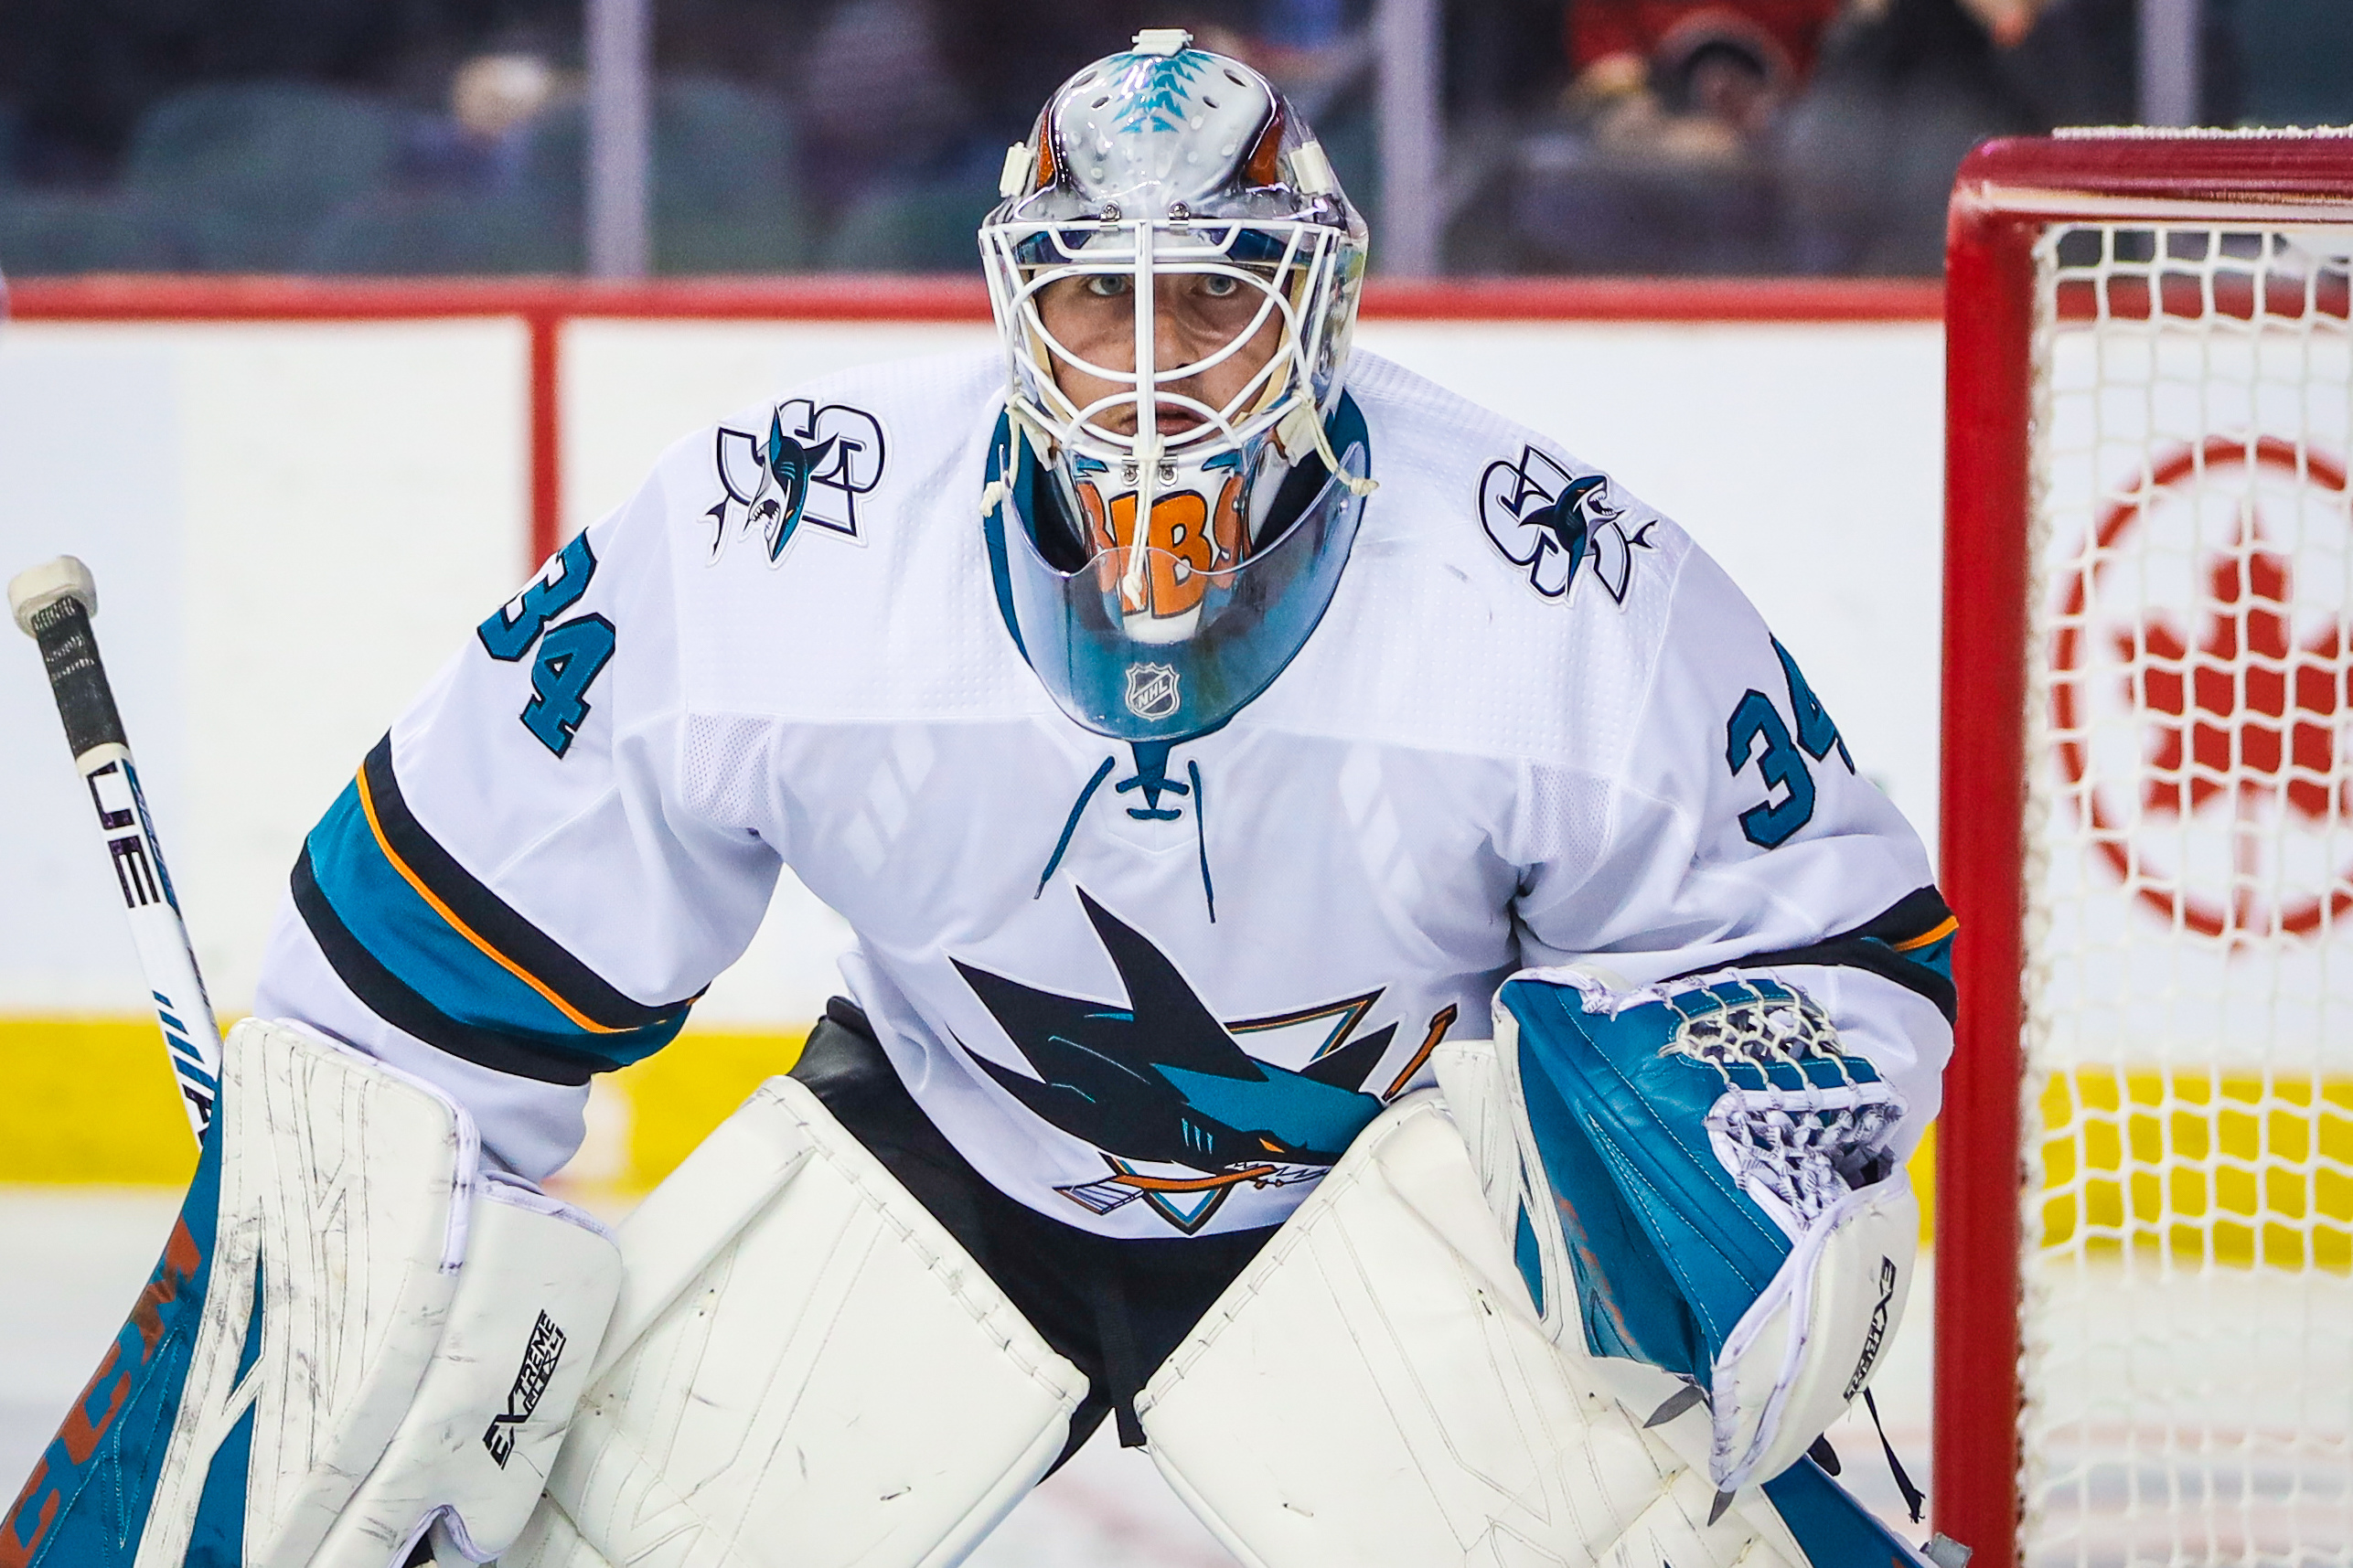 Sep 18, 2019; Calgary, Alberta, CAN; San Jose Sharks goaltender Antoine Bibeau (34) guards his net against the Calgary Flames during the first period at Scotiabank Saddledome.